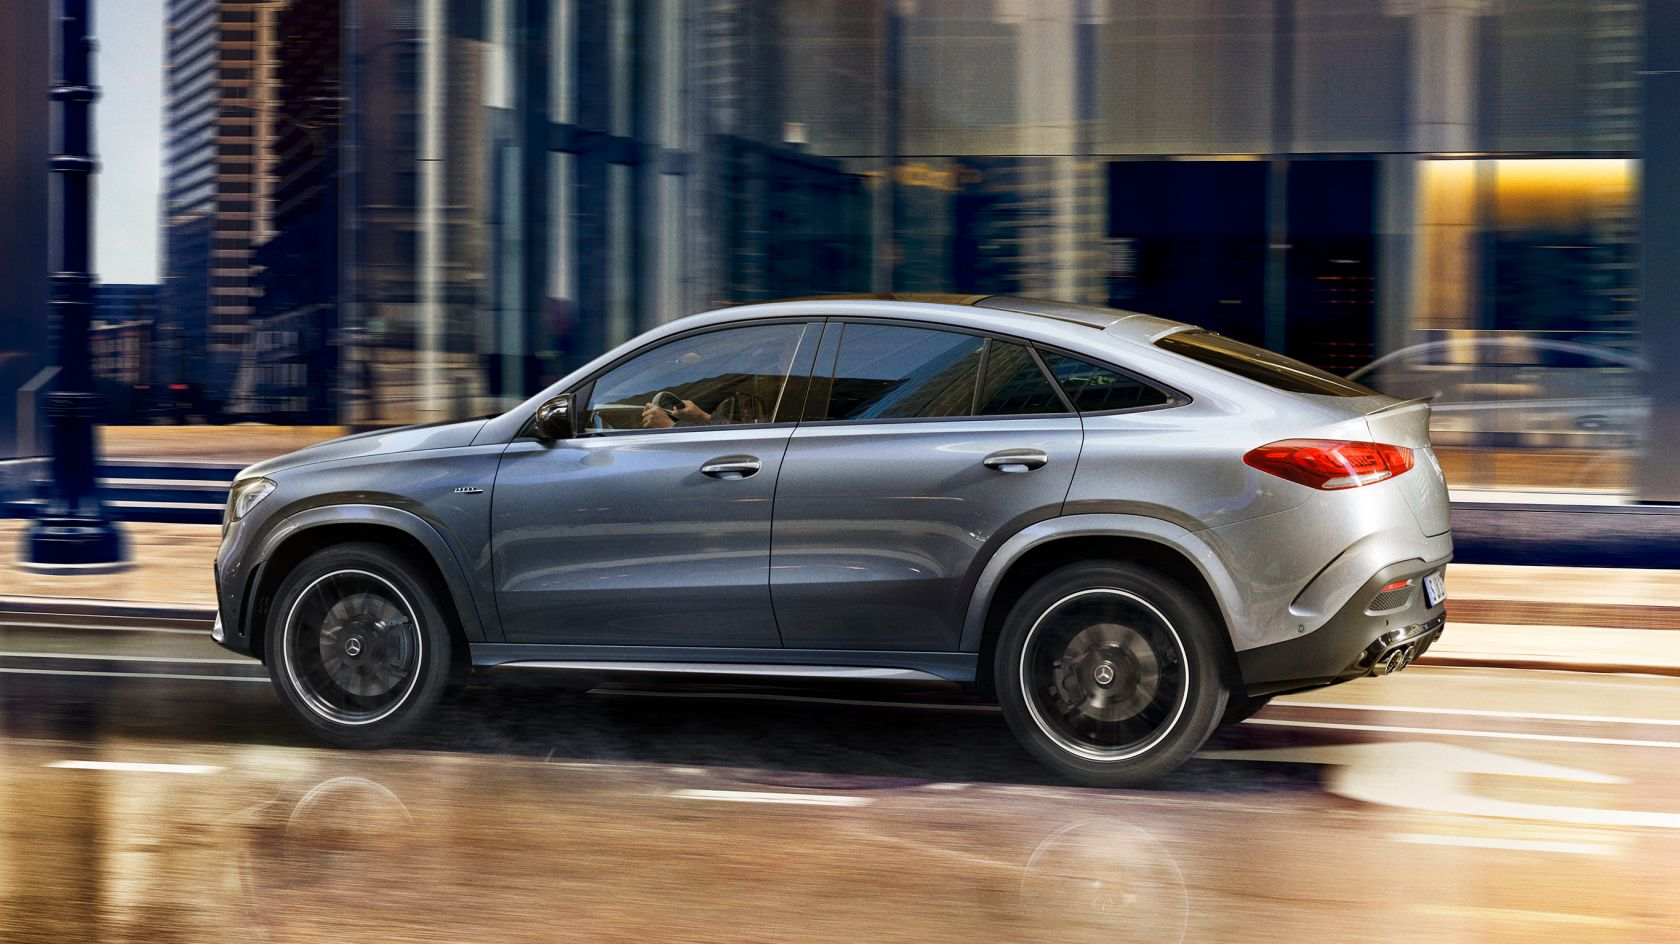 CAR-Avenue-Mercedes-Benz-GLE-Coupe-SUV-03